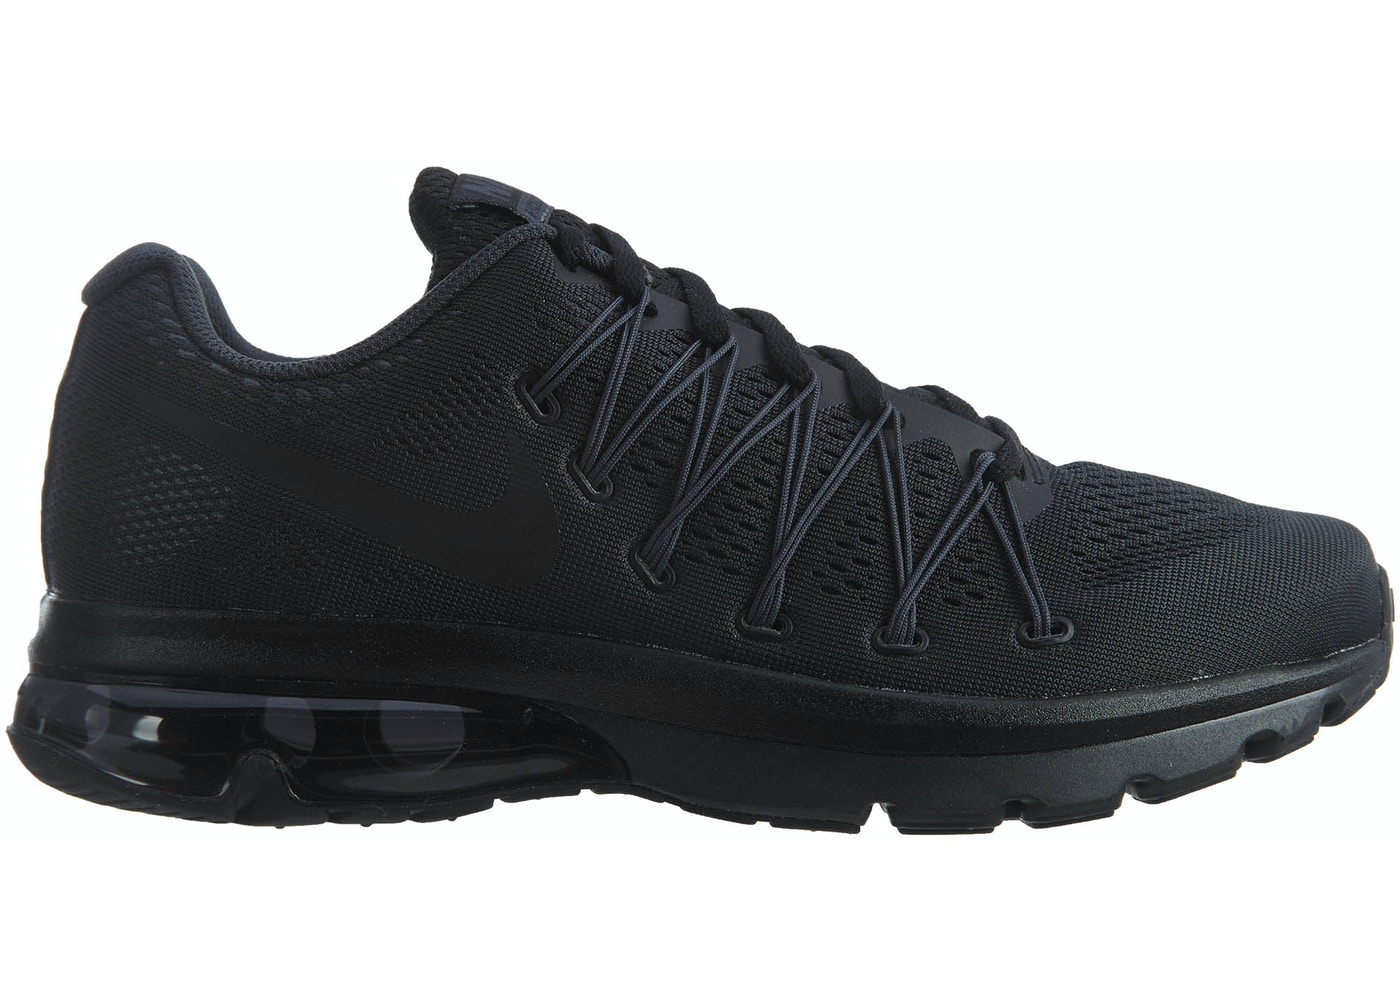 nouveau style 91173 c6272 Air Max Excellerate 5 Black Black-Anthracite